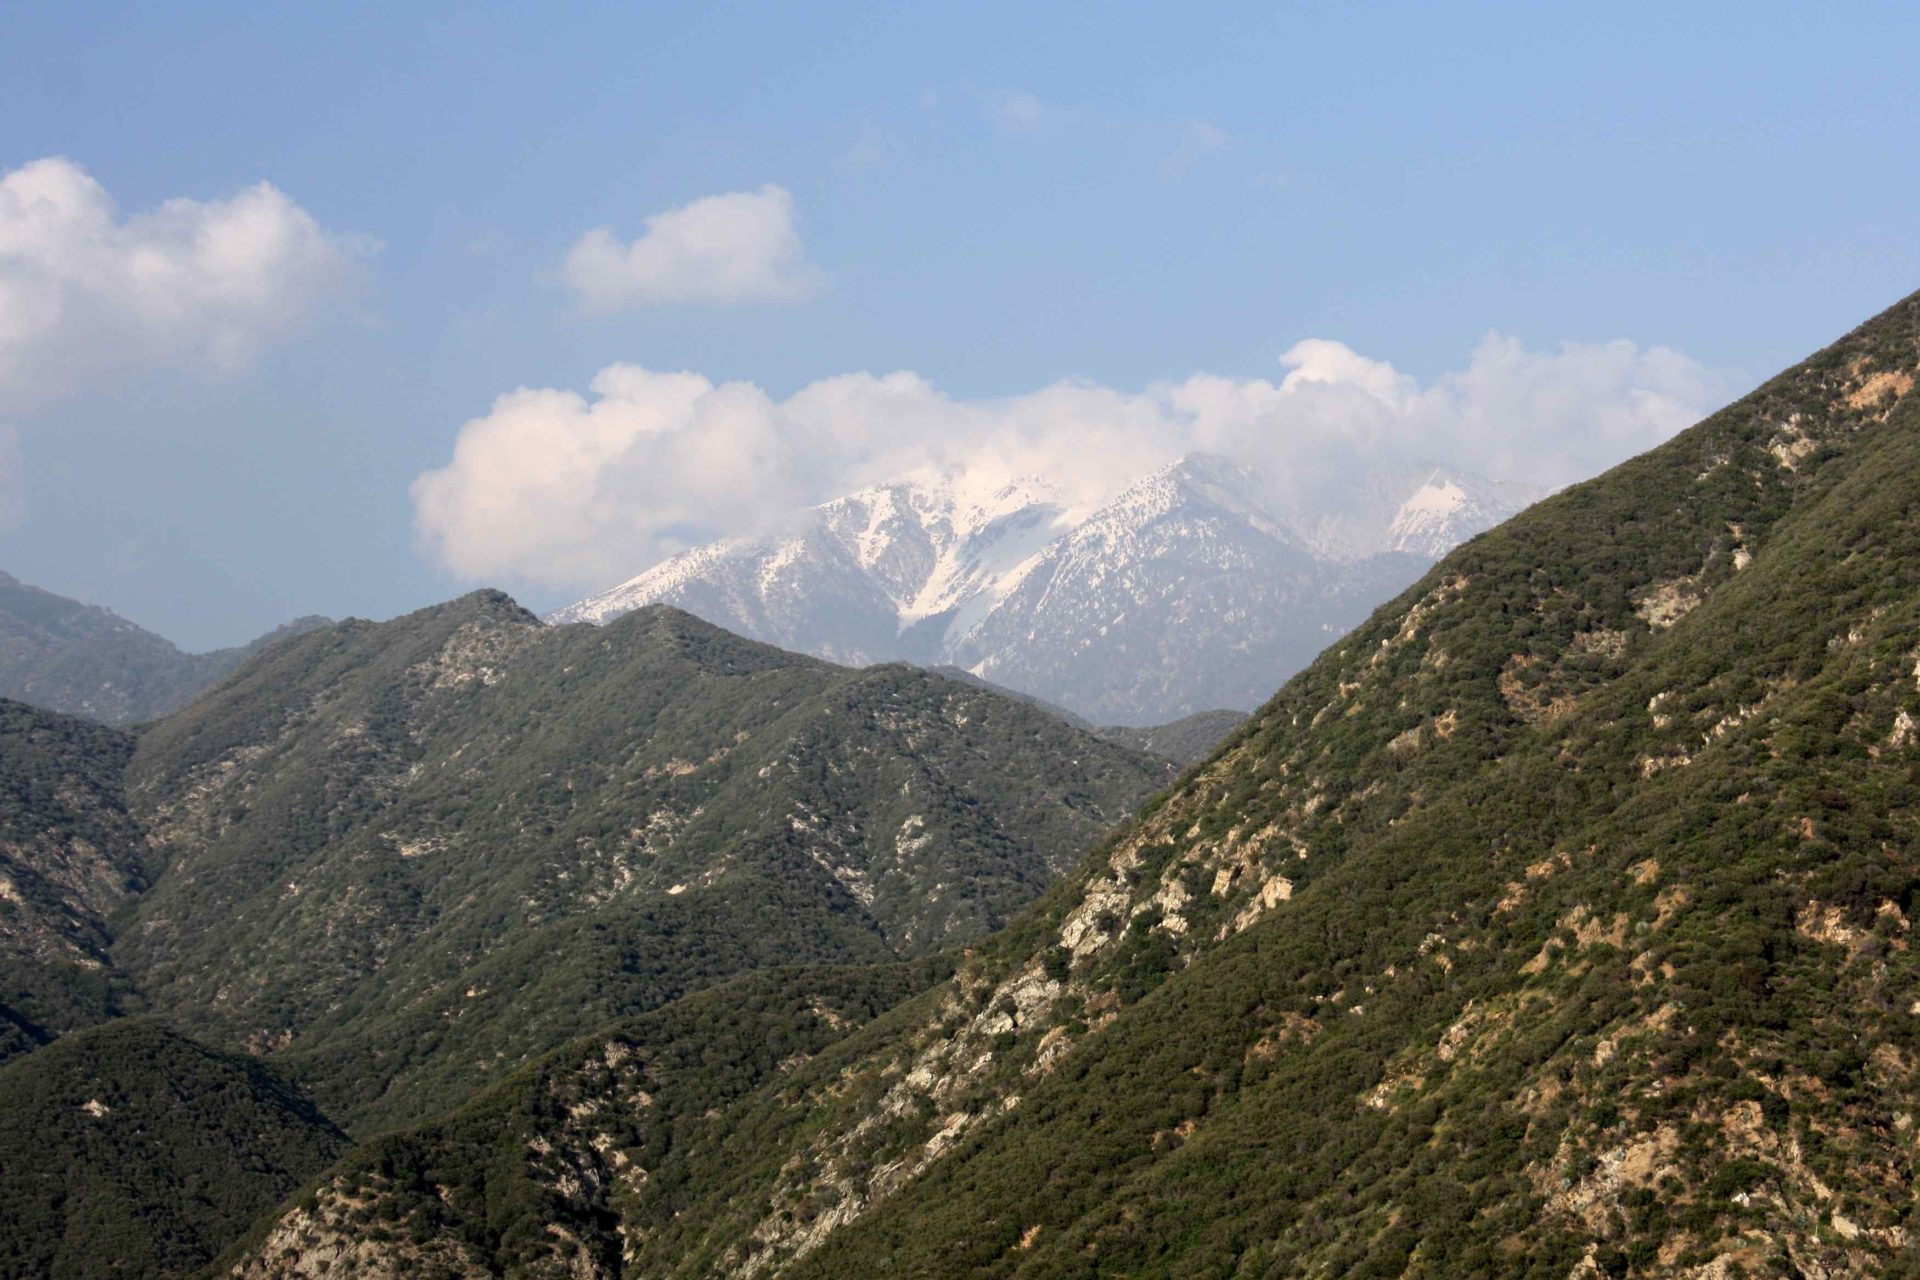 Sheep Mountain Wilderness Additions, San Gabriel Mountains. Photo by Steve Evans.